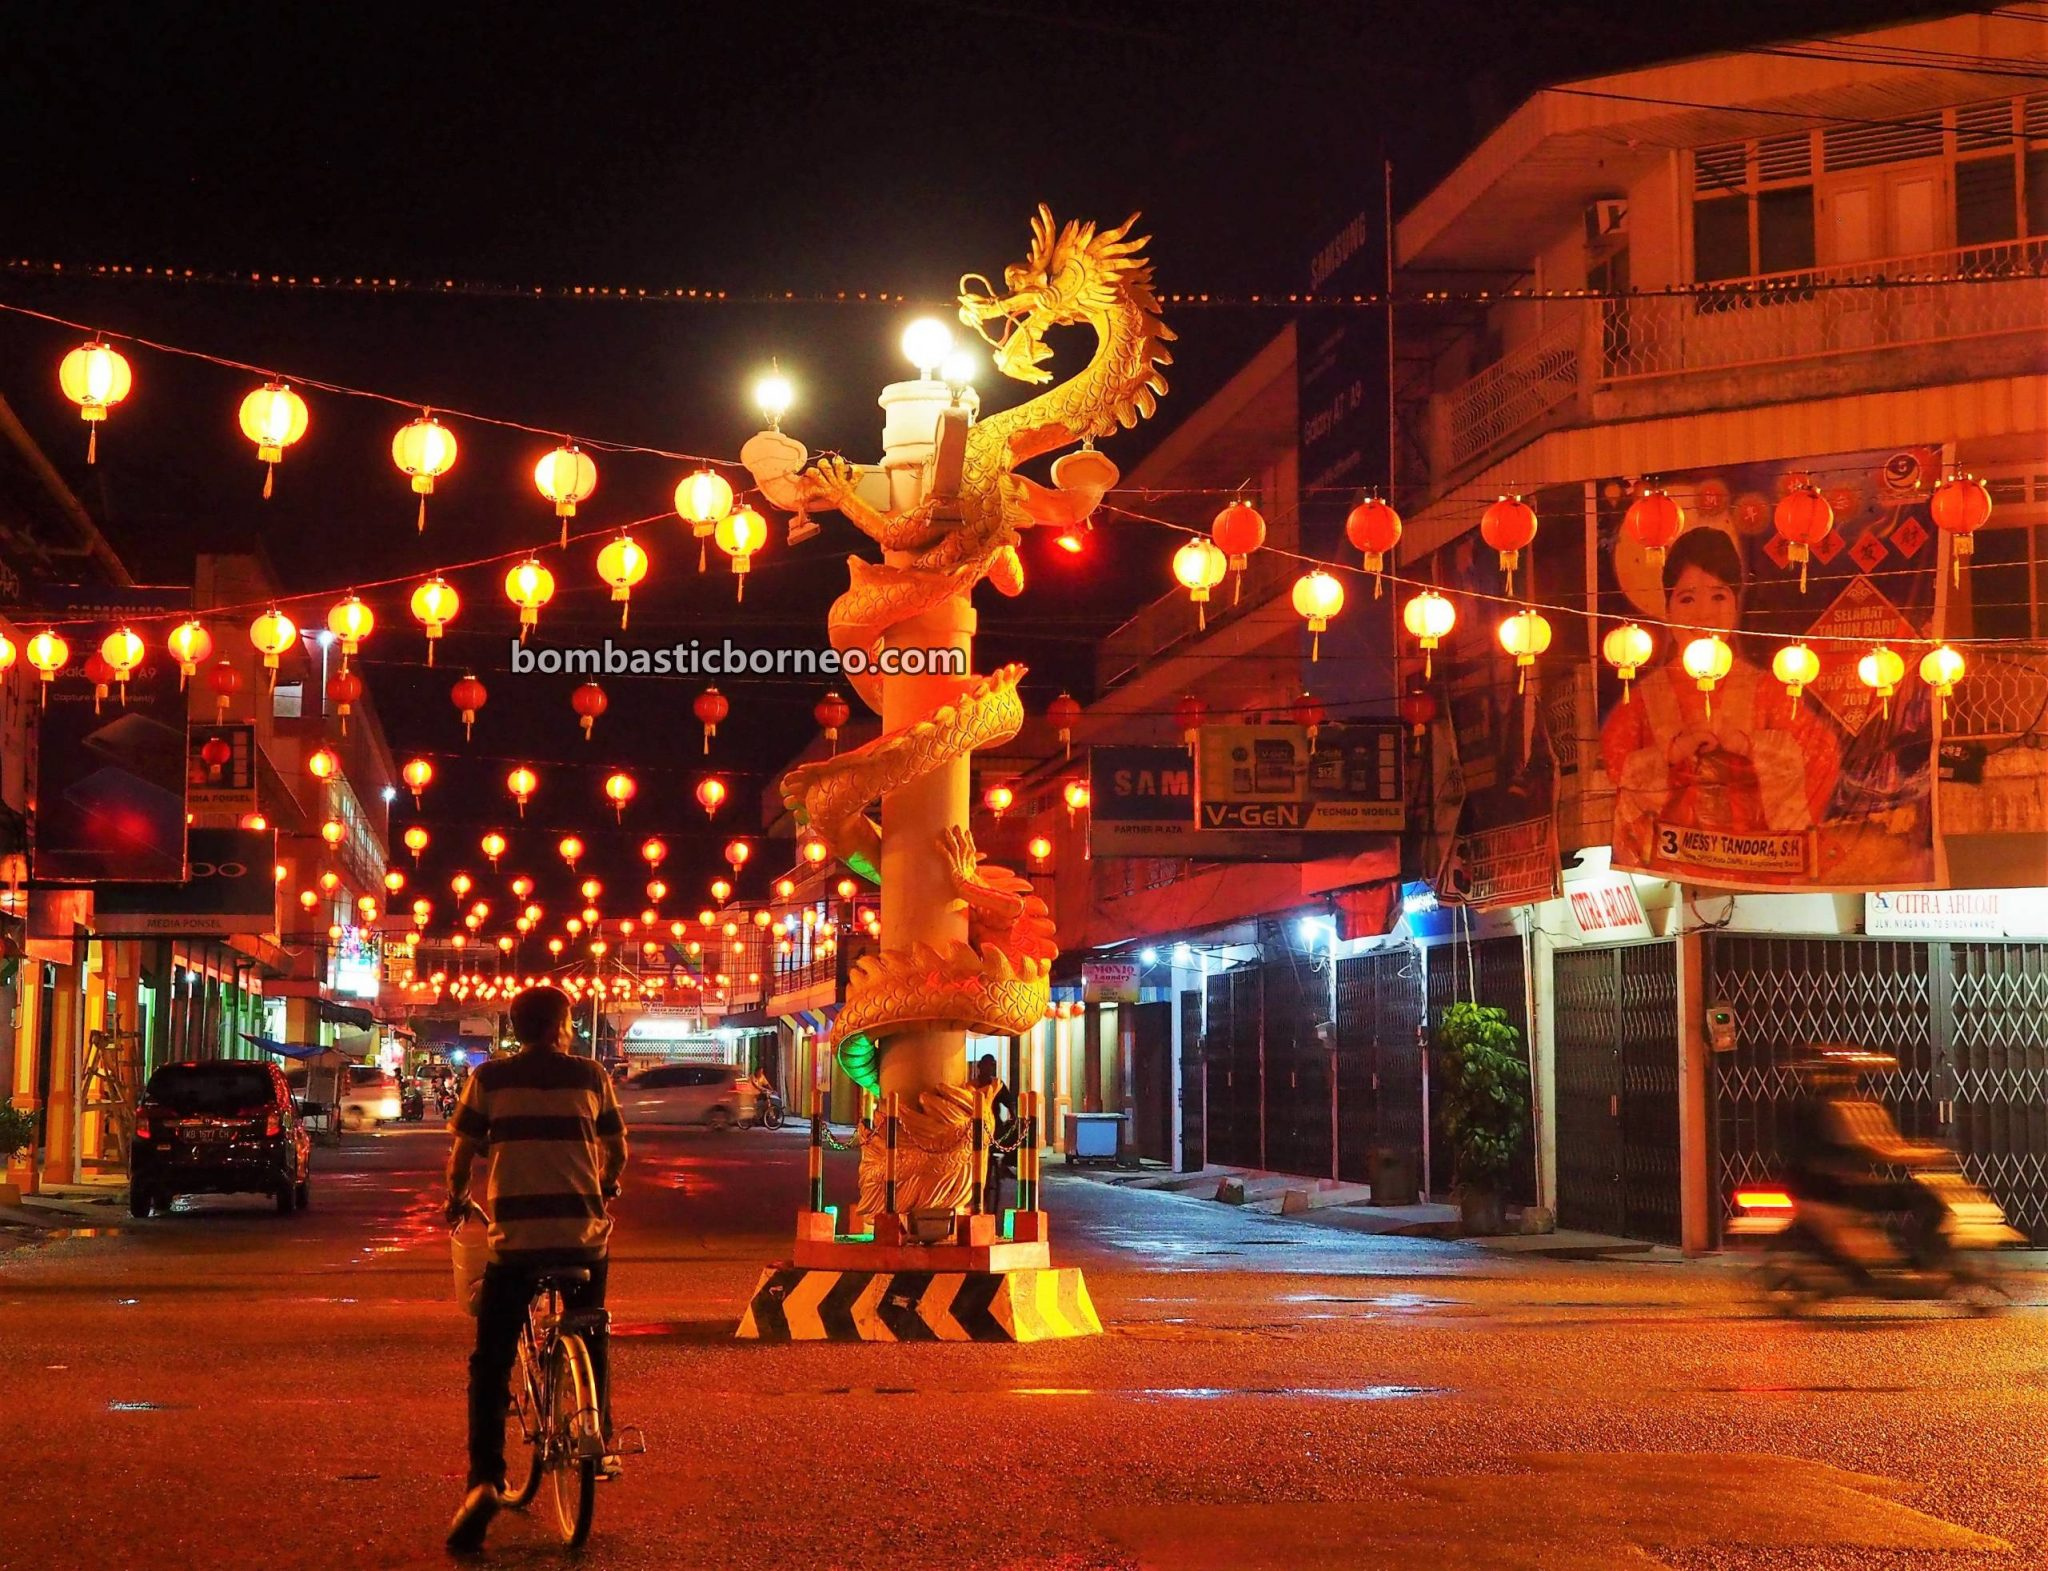 traditional, culture, Chinese New Year, Tahun Baru Imlek, backpackers, destination, Ethnic, TiongHoa, Indonesia, West Kalimantan, Kota Singkawang, Tourism, tourist attraction, travel guide, Trans Borneo